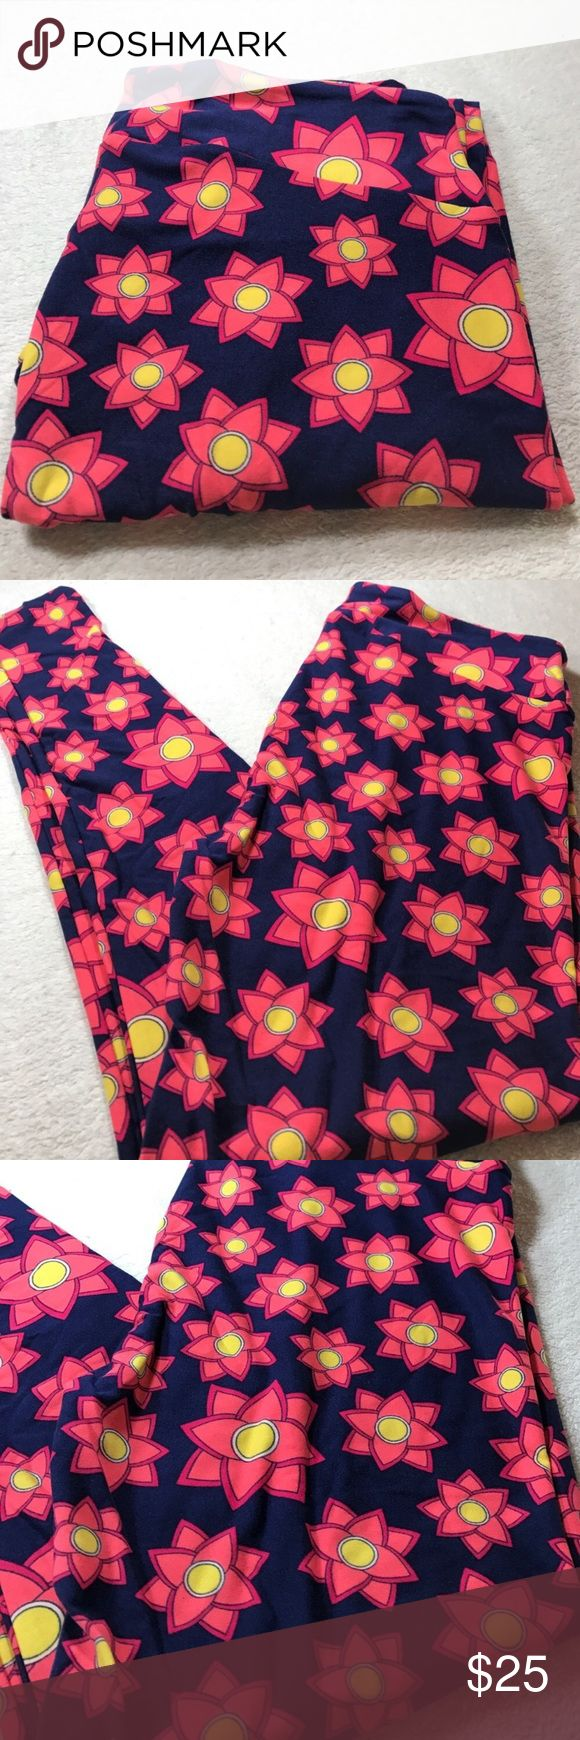 LuLaRoe Tall and curvy leggings nwt LuLaRoe Tall and curvy leggings nwt  price is firm unless bundled LuLaRoe Pants Leggings